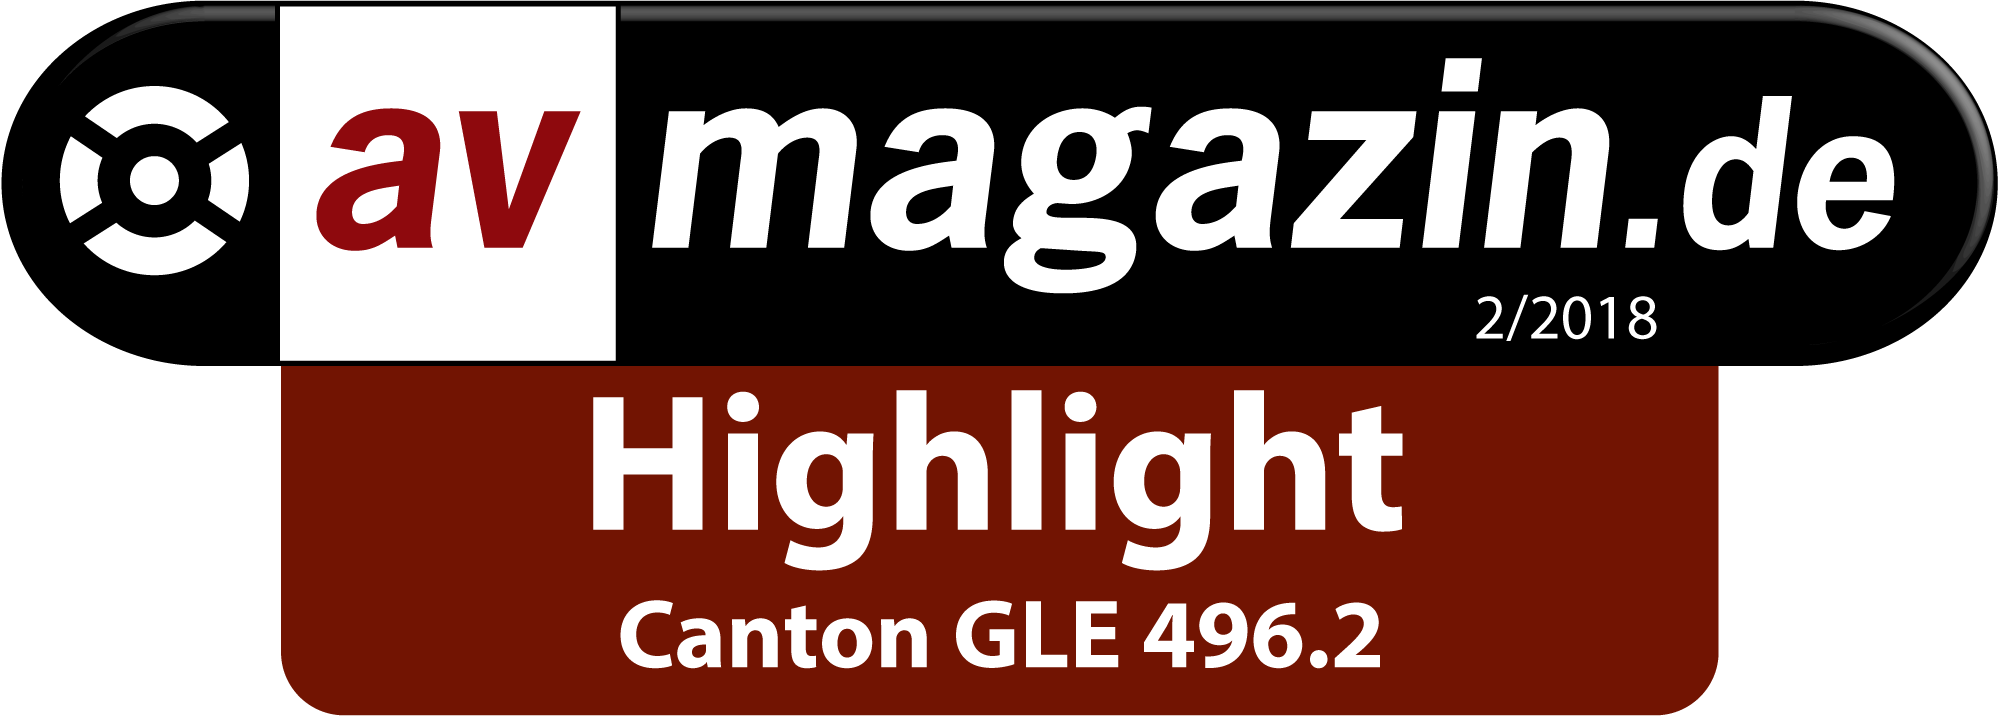 GLE_496-2_av-magazon-de_Highlight